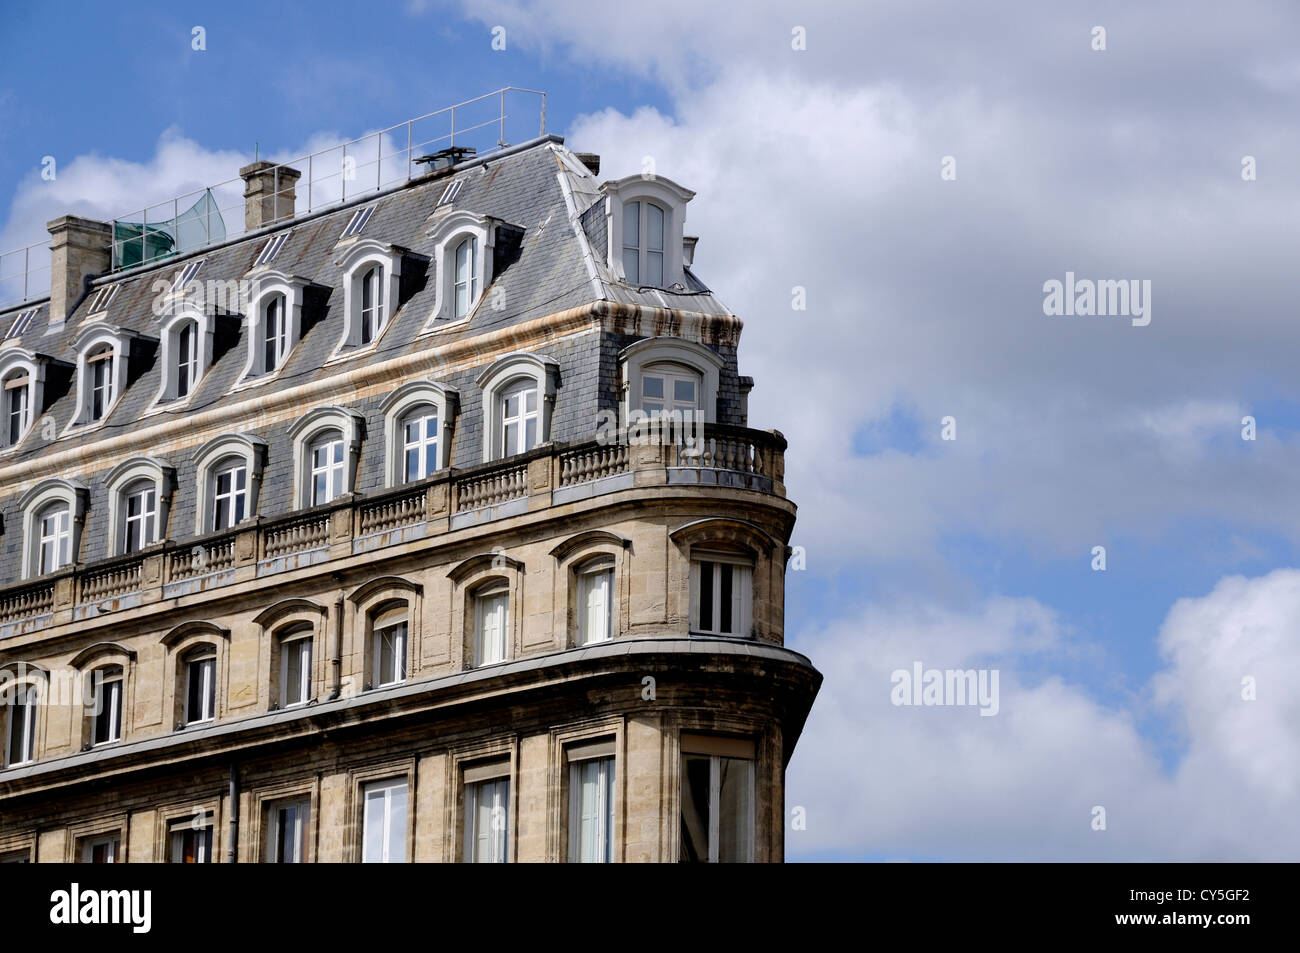 Typical French Apartment Building Architecture In Bordeaux, France   Stock  Image